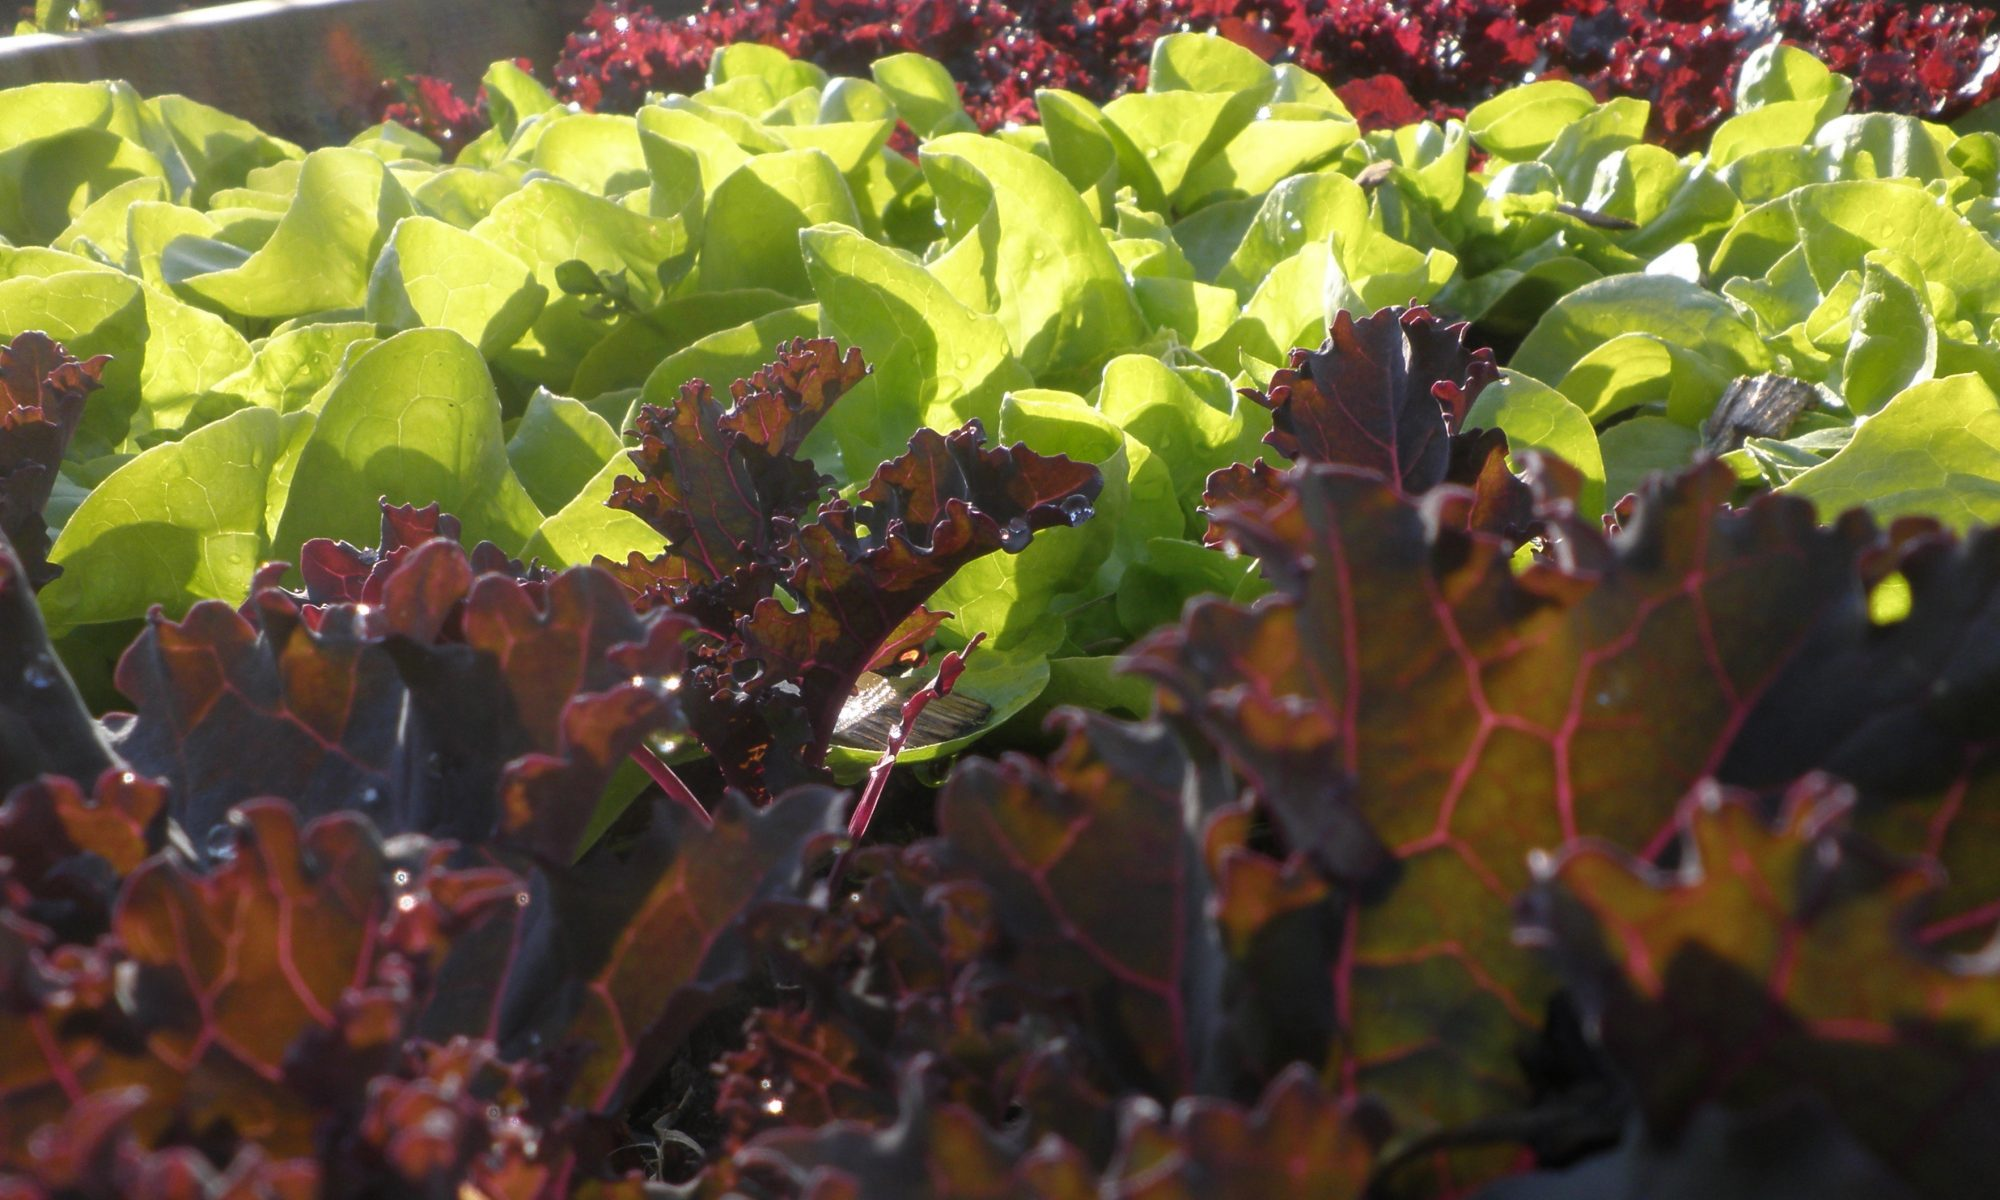 Rows of lettuces make for a pretty combination of colours